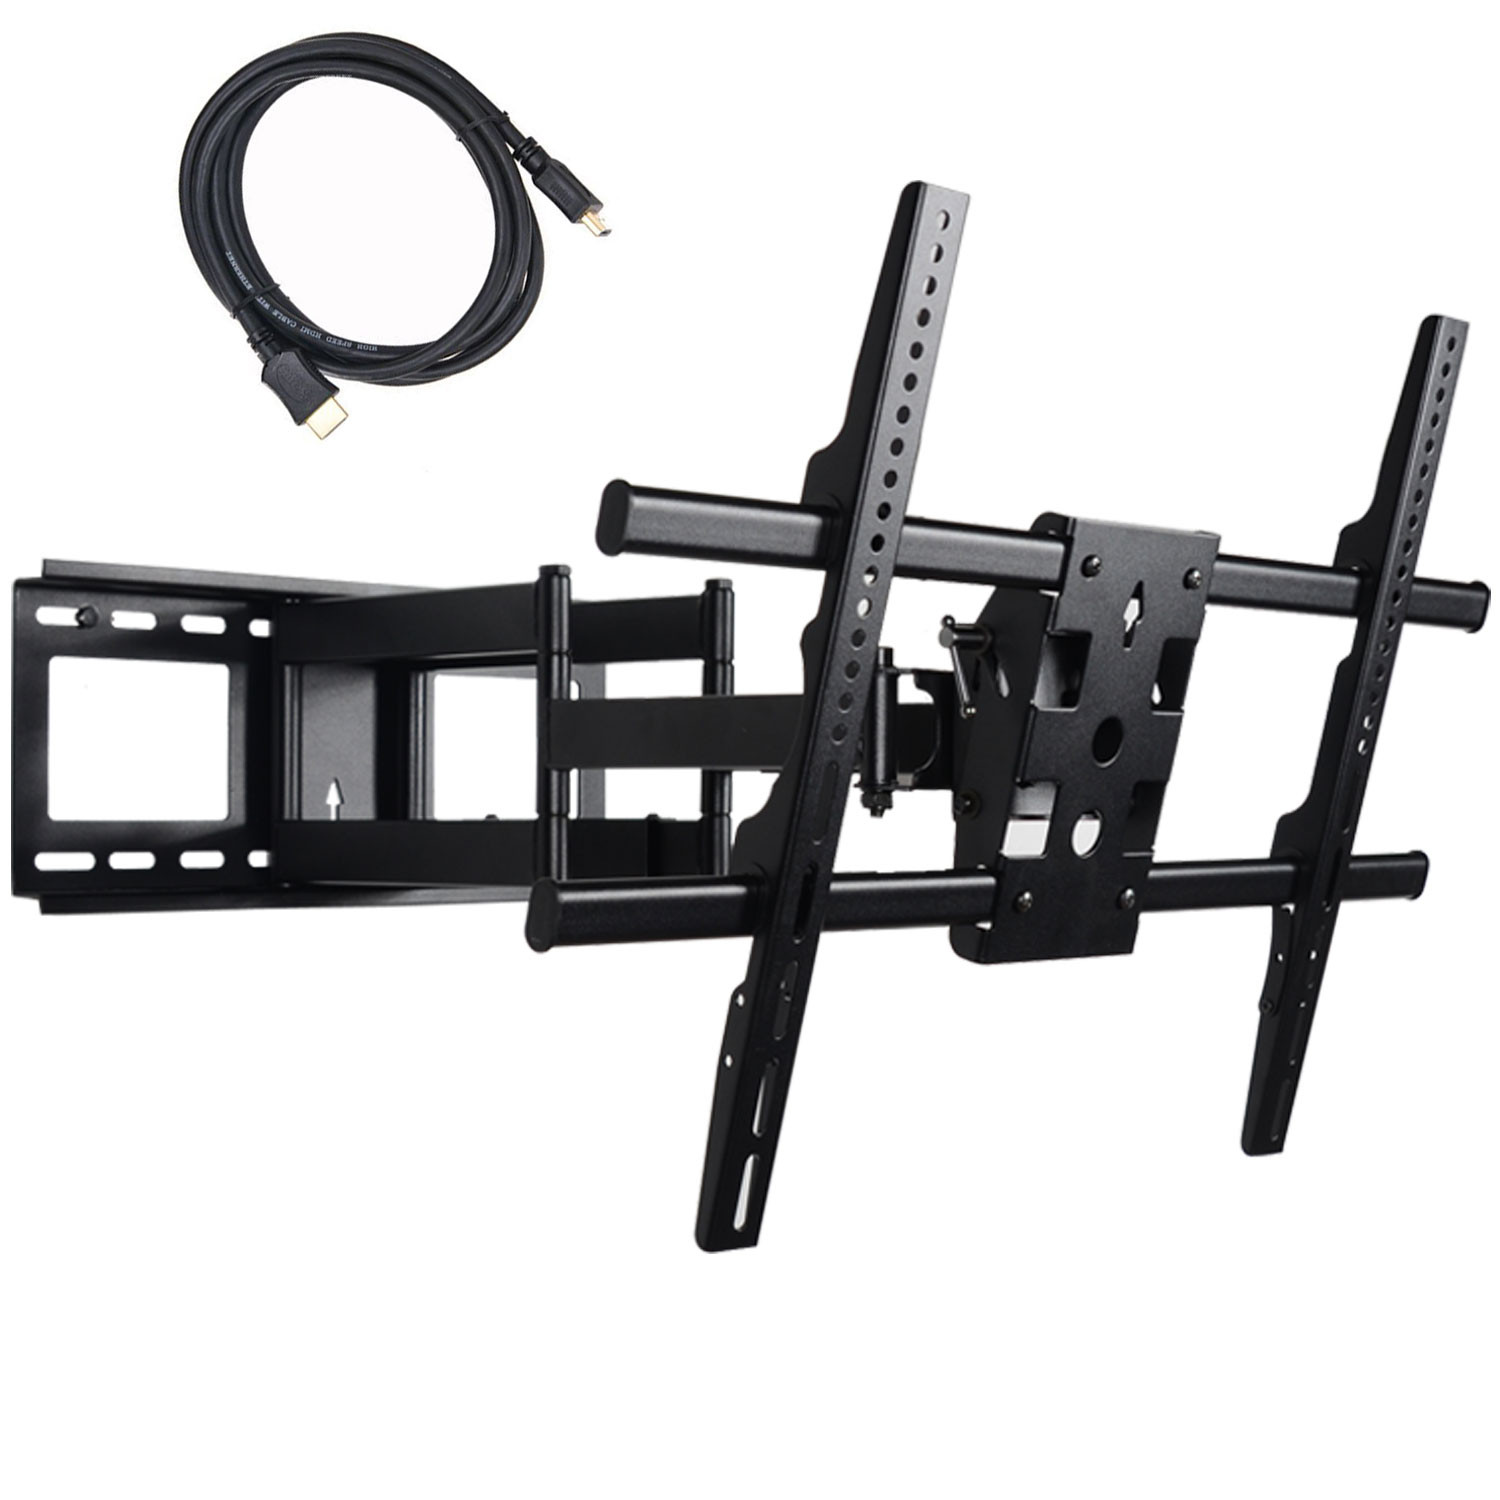 "VideoSecu Full Motion Tilt TV Wall Mount for most 40""-70"" Samsung UN75J6300AFXZA LG HDTV LCD LED Plasma MW380B2 BW9"